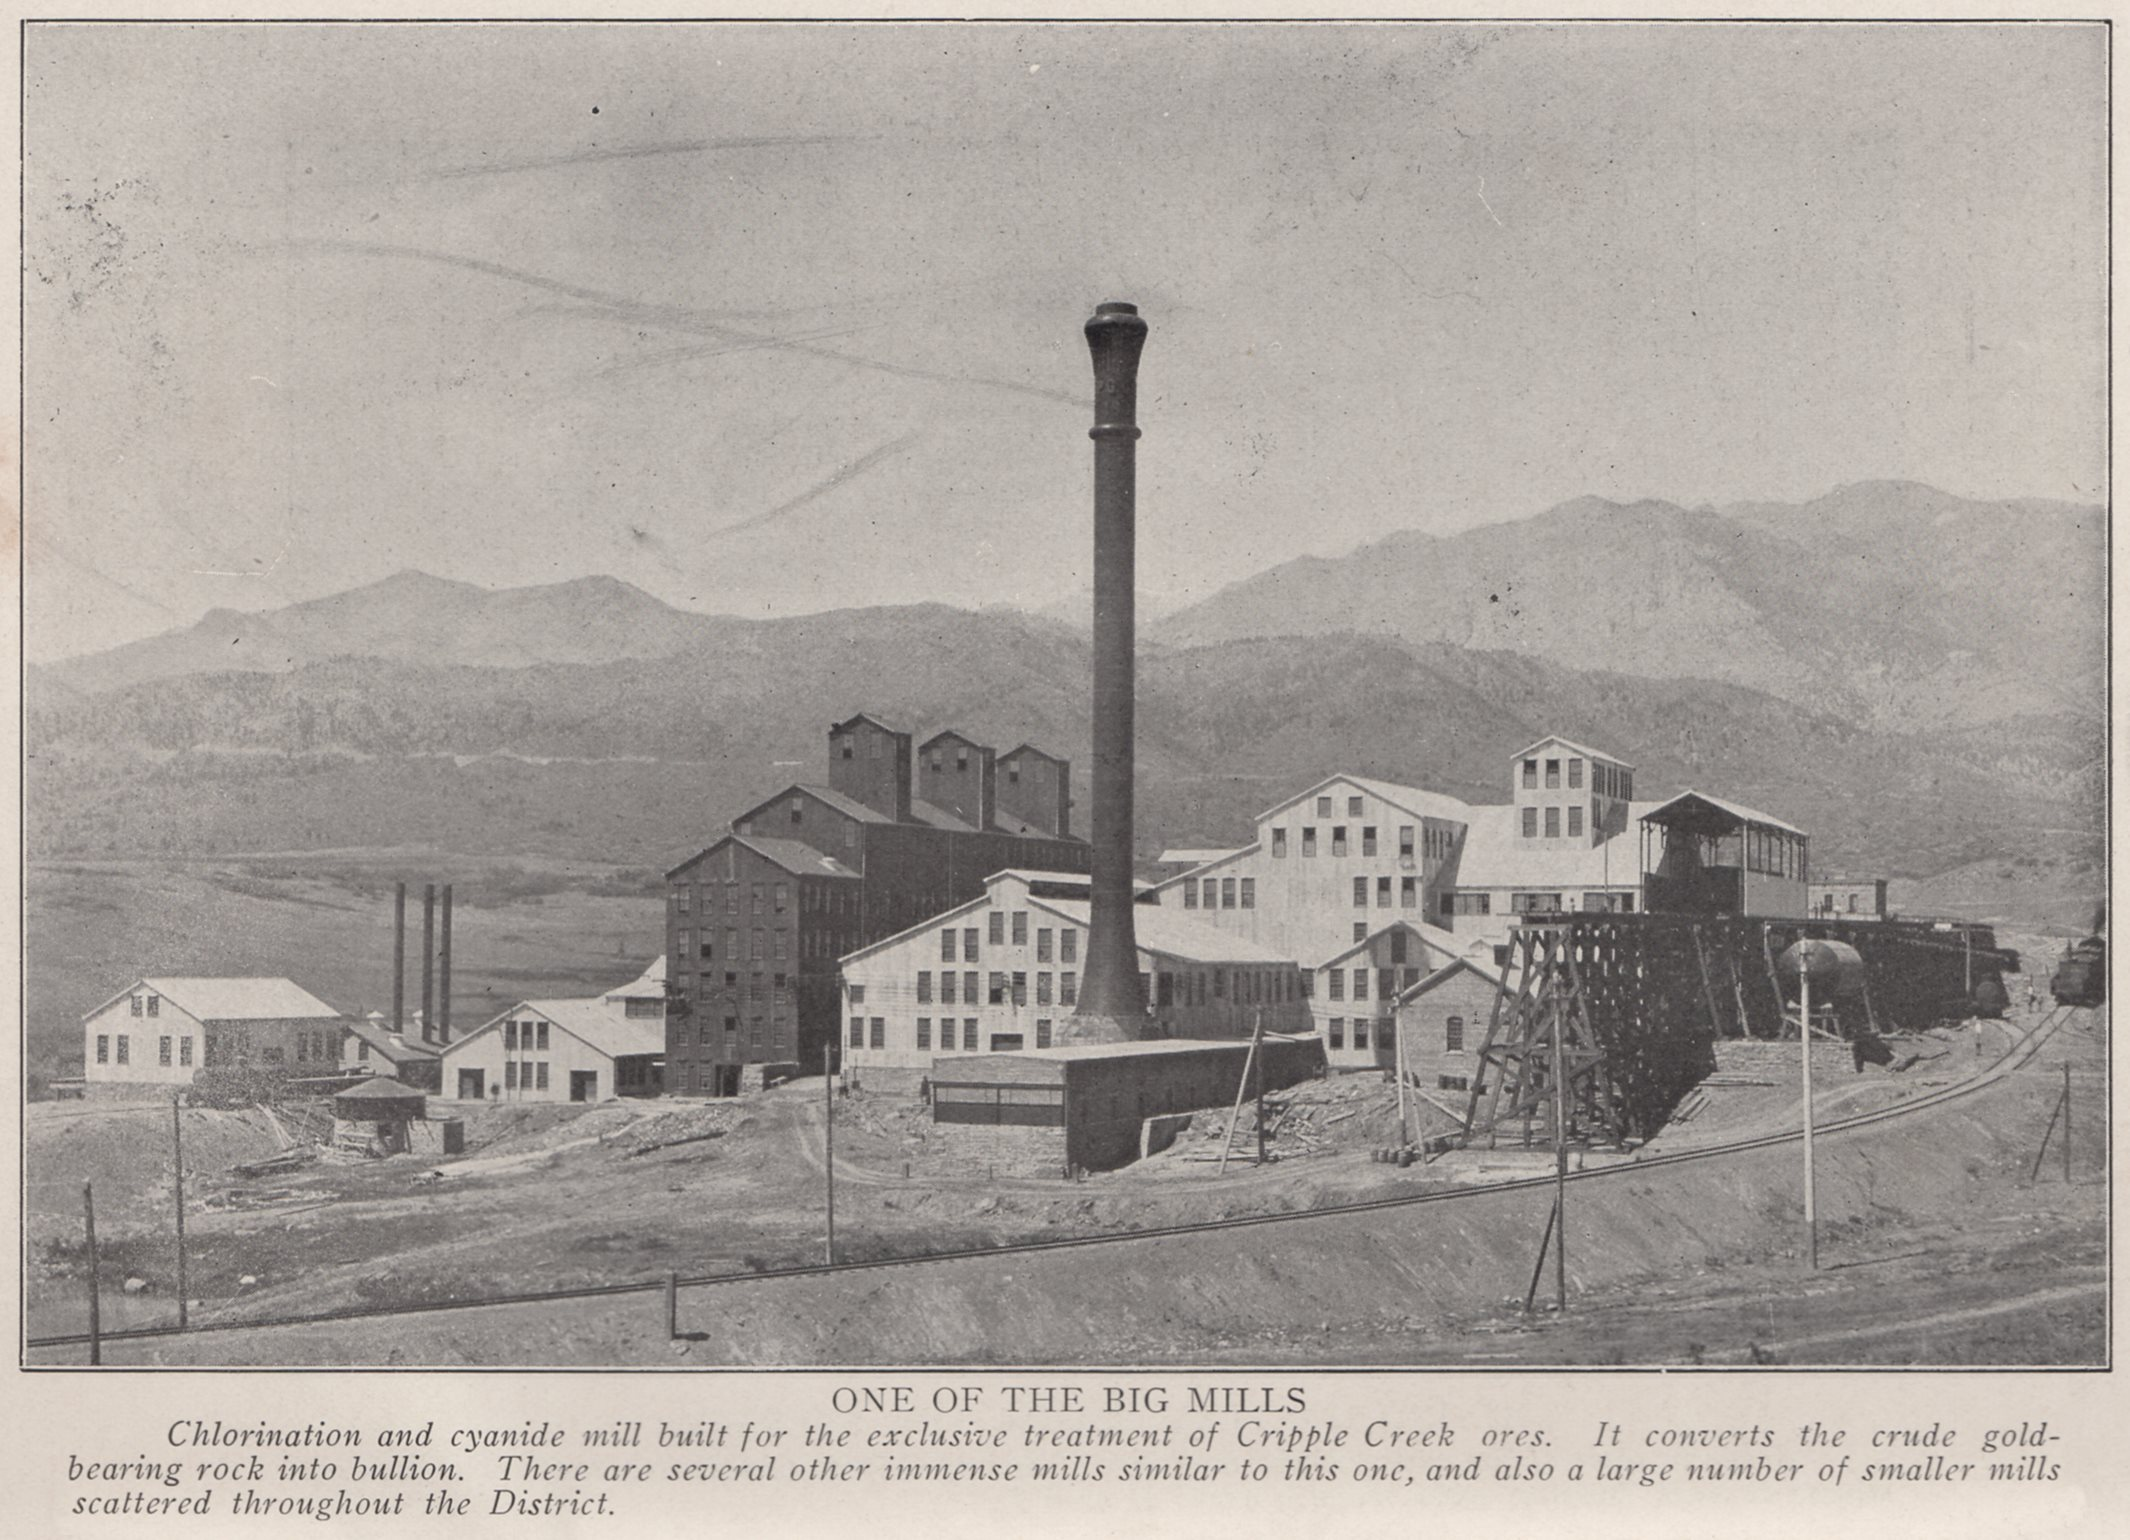 One of the Big Mills. Portland Mill at Colorado Springs